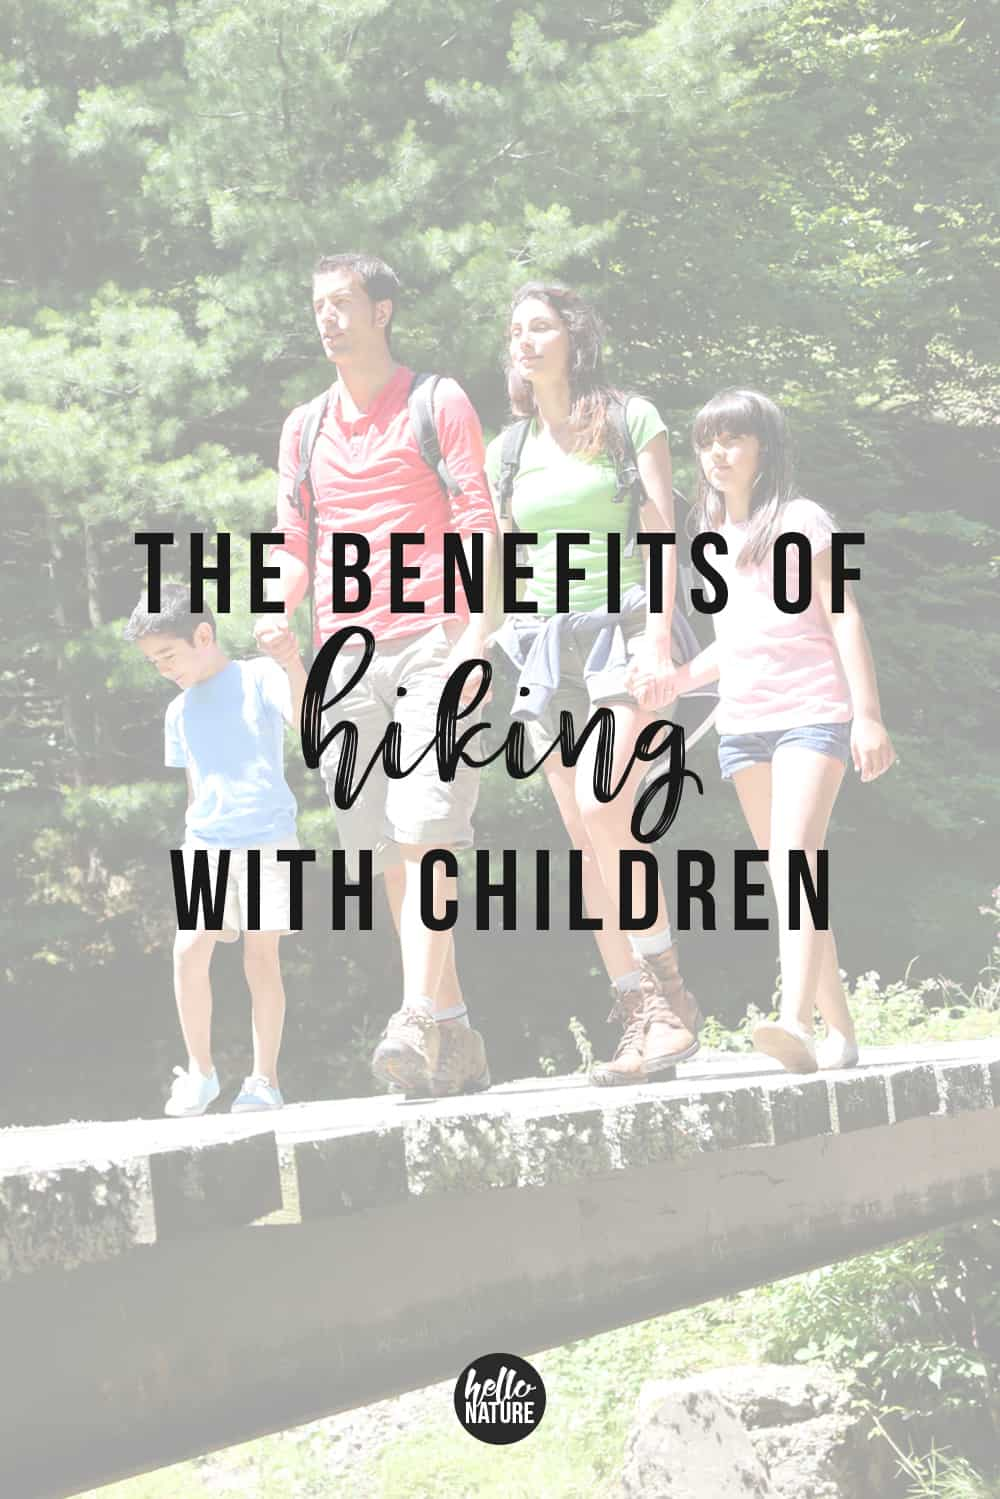 Family vacations can be even more fun when you hit the trails. There are SO many benefits of exploring and hiking with kids. Check out the health benefits of hiking with kids and learn how to get started hiking with your family. These tips will make your outdoor adventures even more amazing! #Hiking #HikingWithKids #GetOutside #OptOutside #OutdoorActivities #OutdoorActivitiesForKids #Camping #CampingWithKids #TravelWithKids